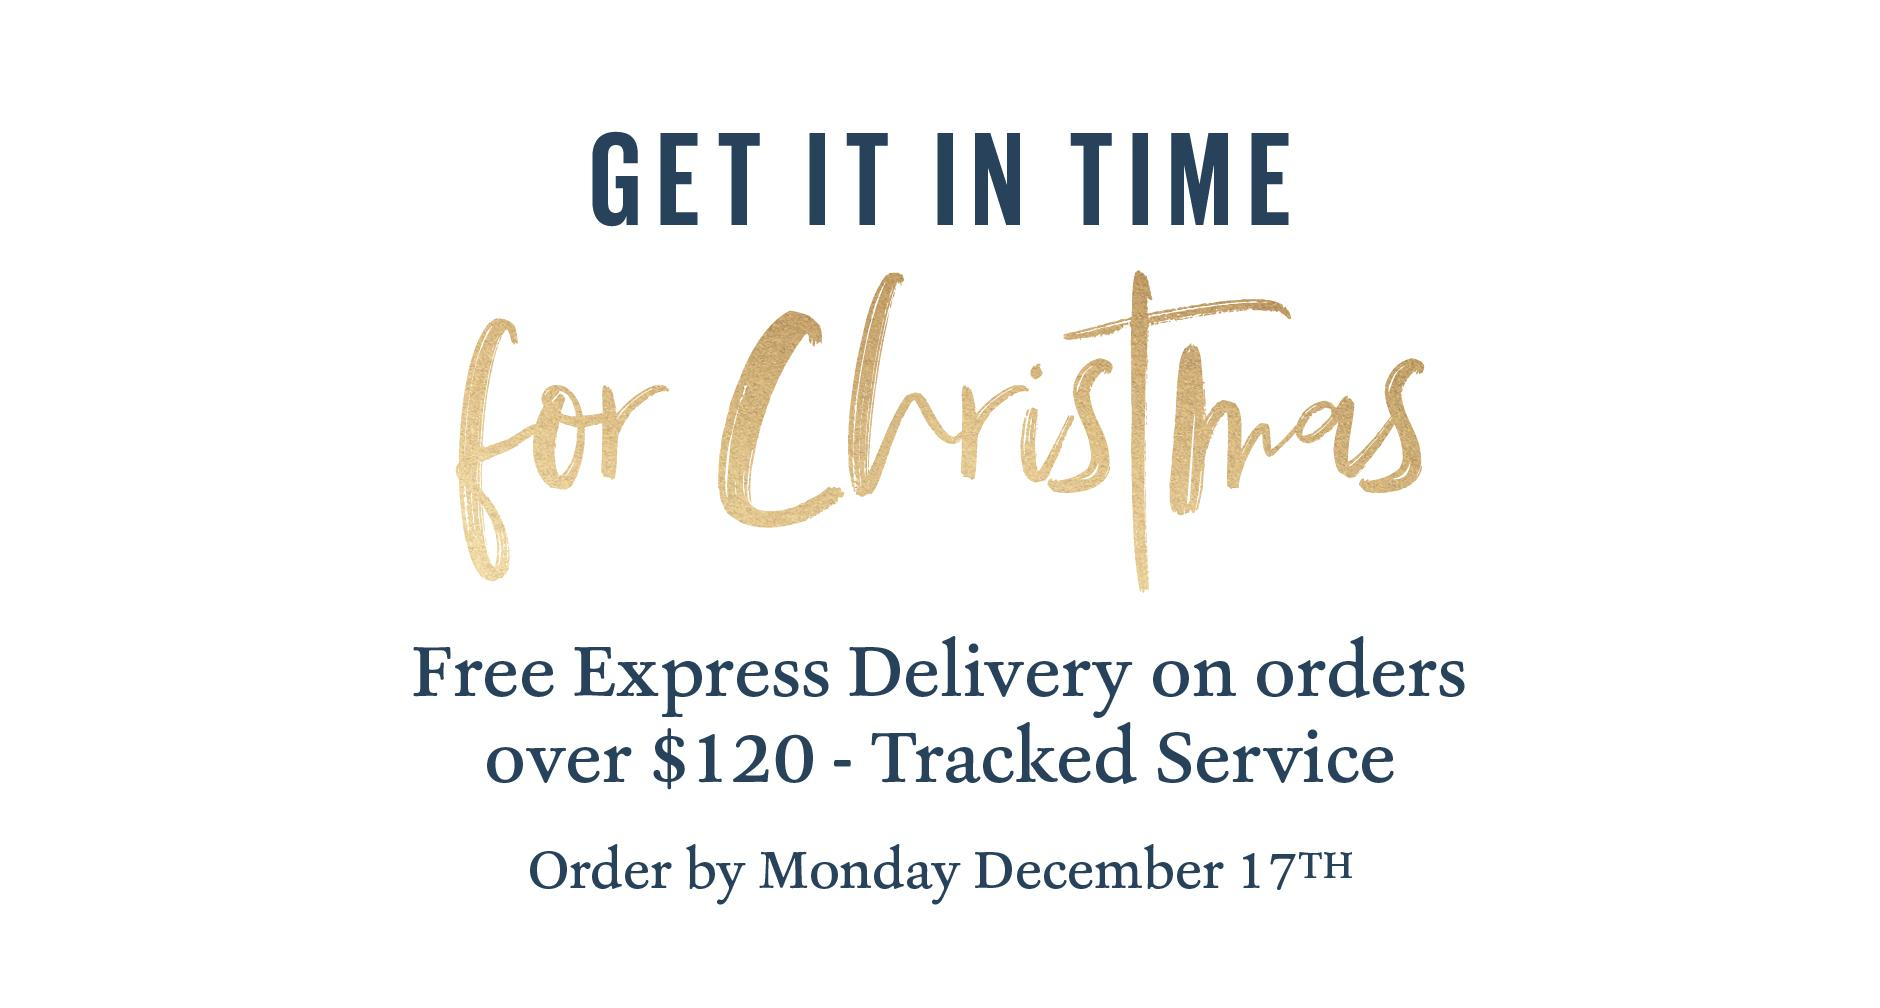 Get it in time for Christmas. FREE EXPRESS DELIVERY ON ORDERS OVER $120 -TRACKED SERVICE ORDER BY MONDAY DECEMBER 17TH